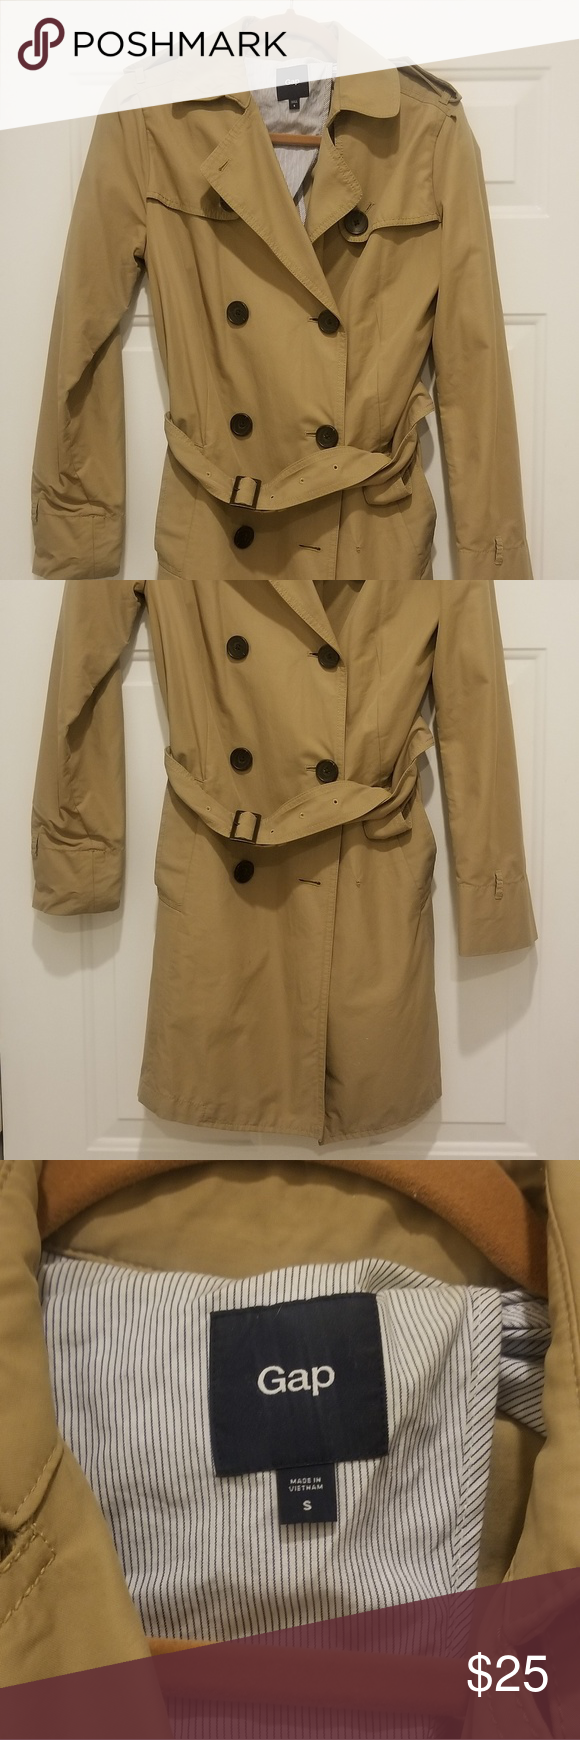 f35c0d543d254 Gap double breasted belted khaki trench coat VGUC! Minimal use. Light weight,  great